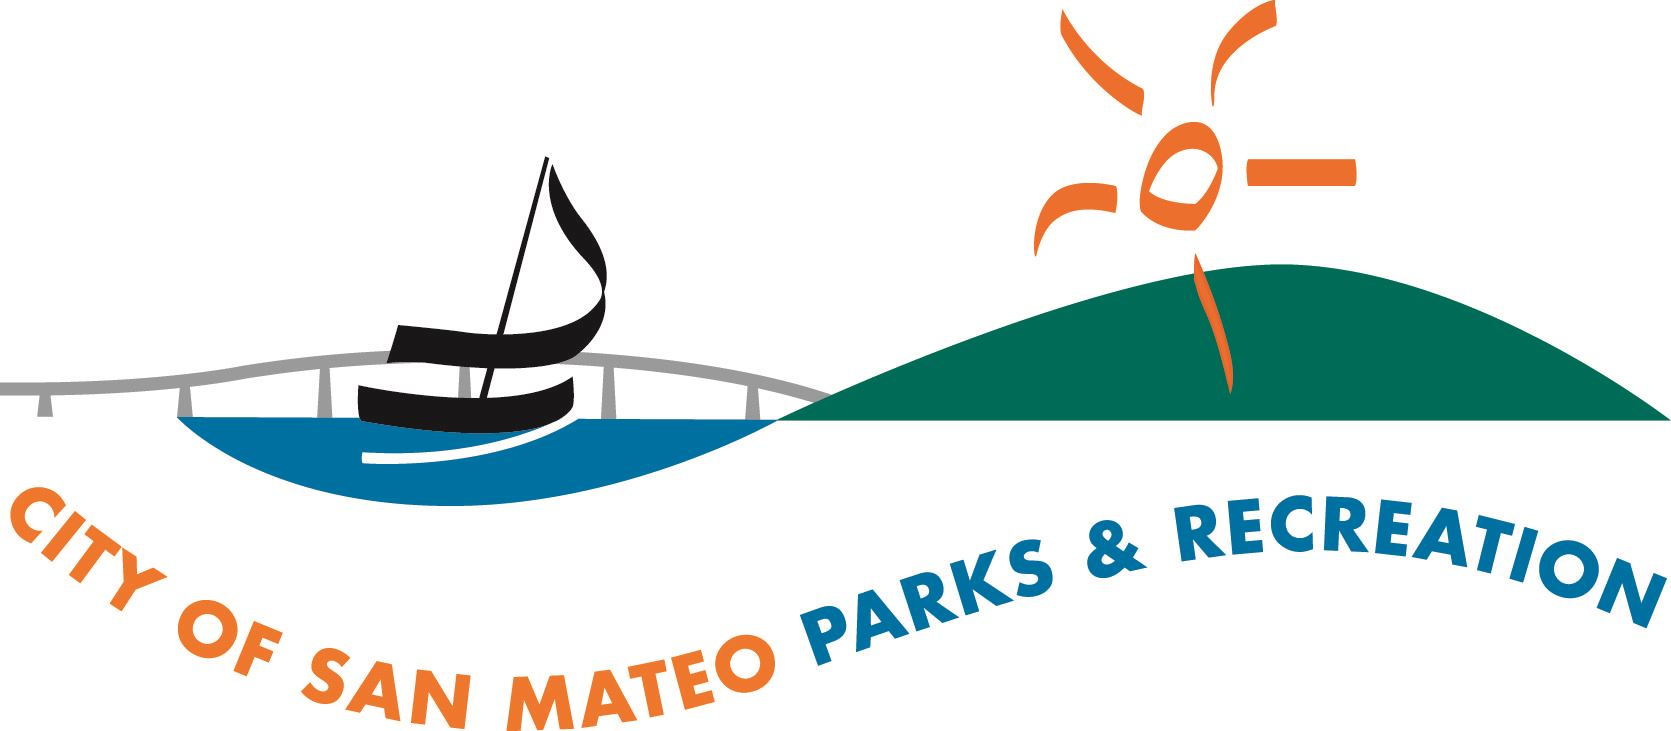 Image of the City of San Mateo Parks and Recreation Department logo.